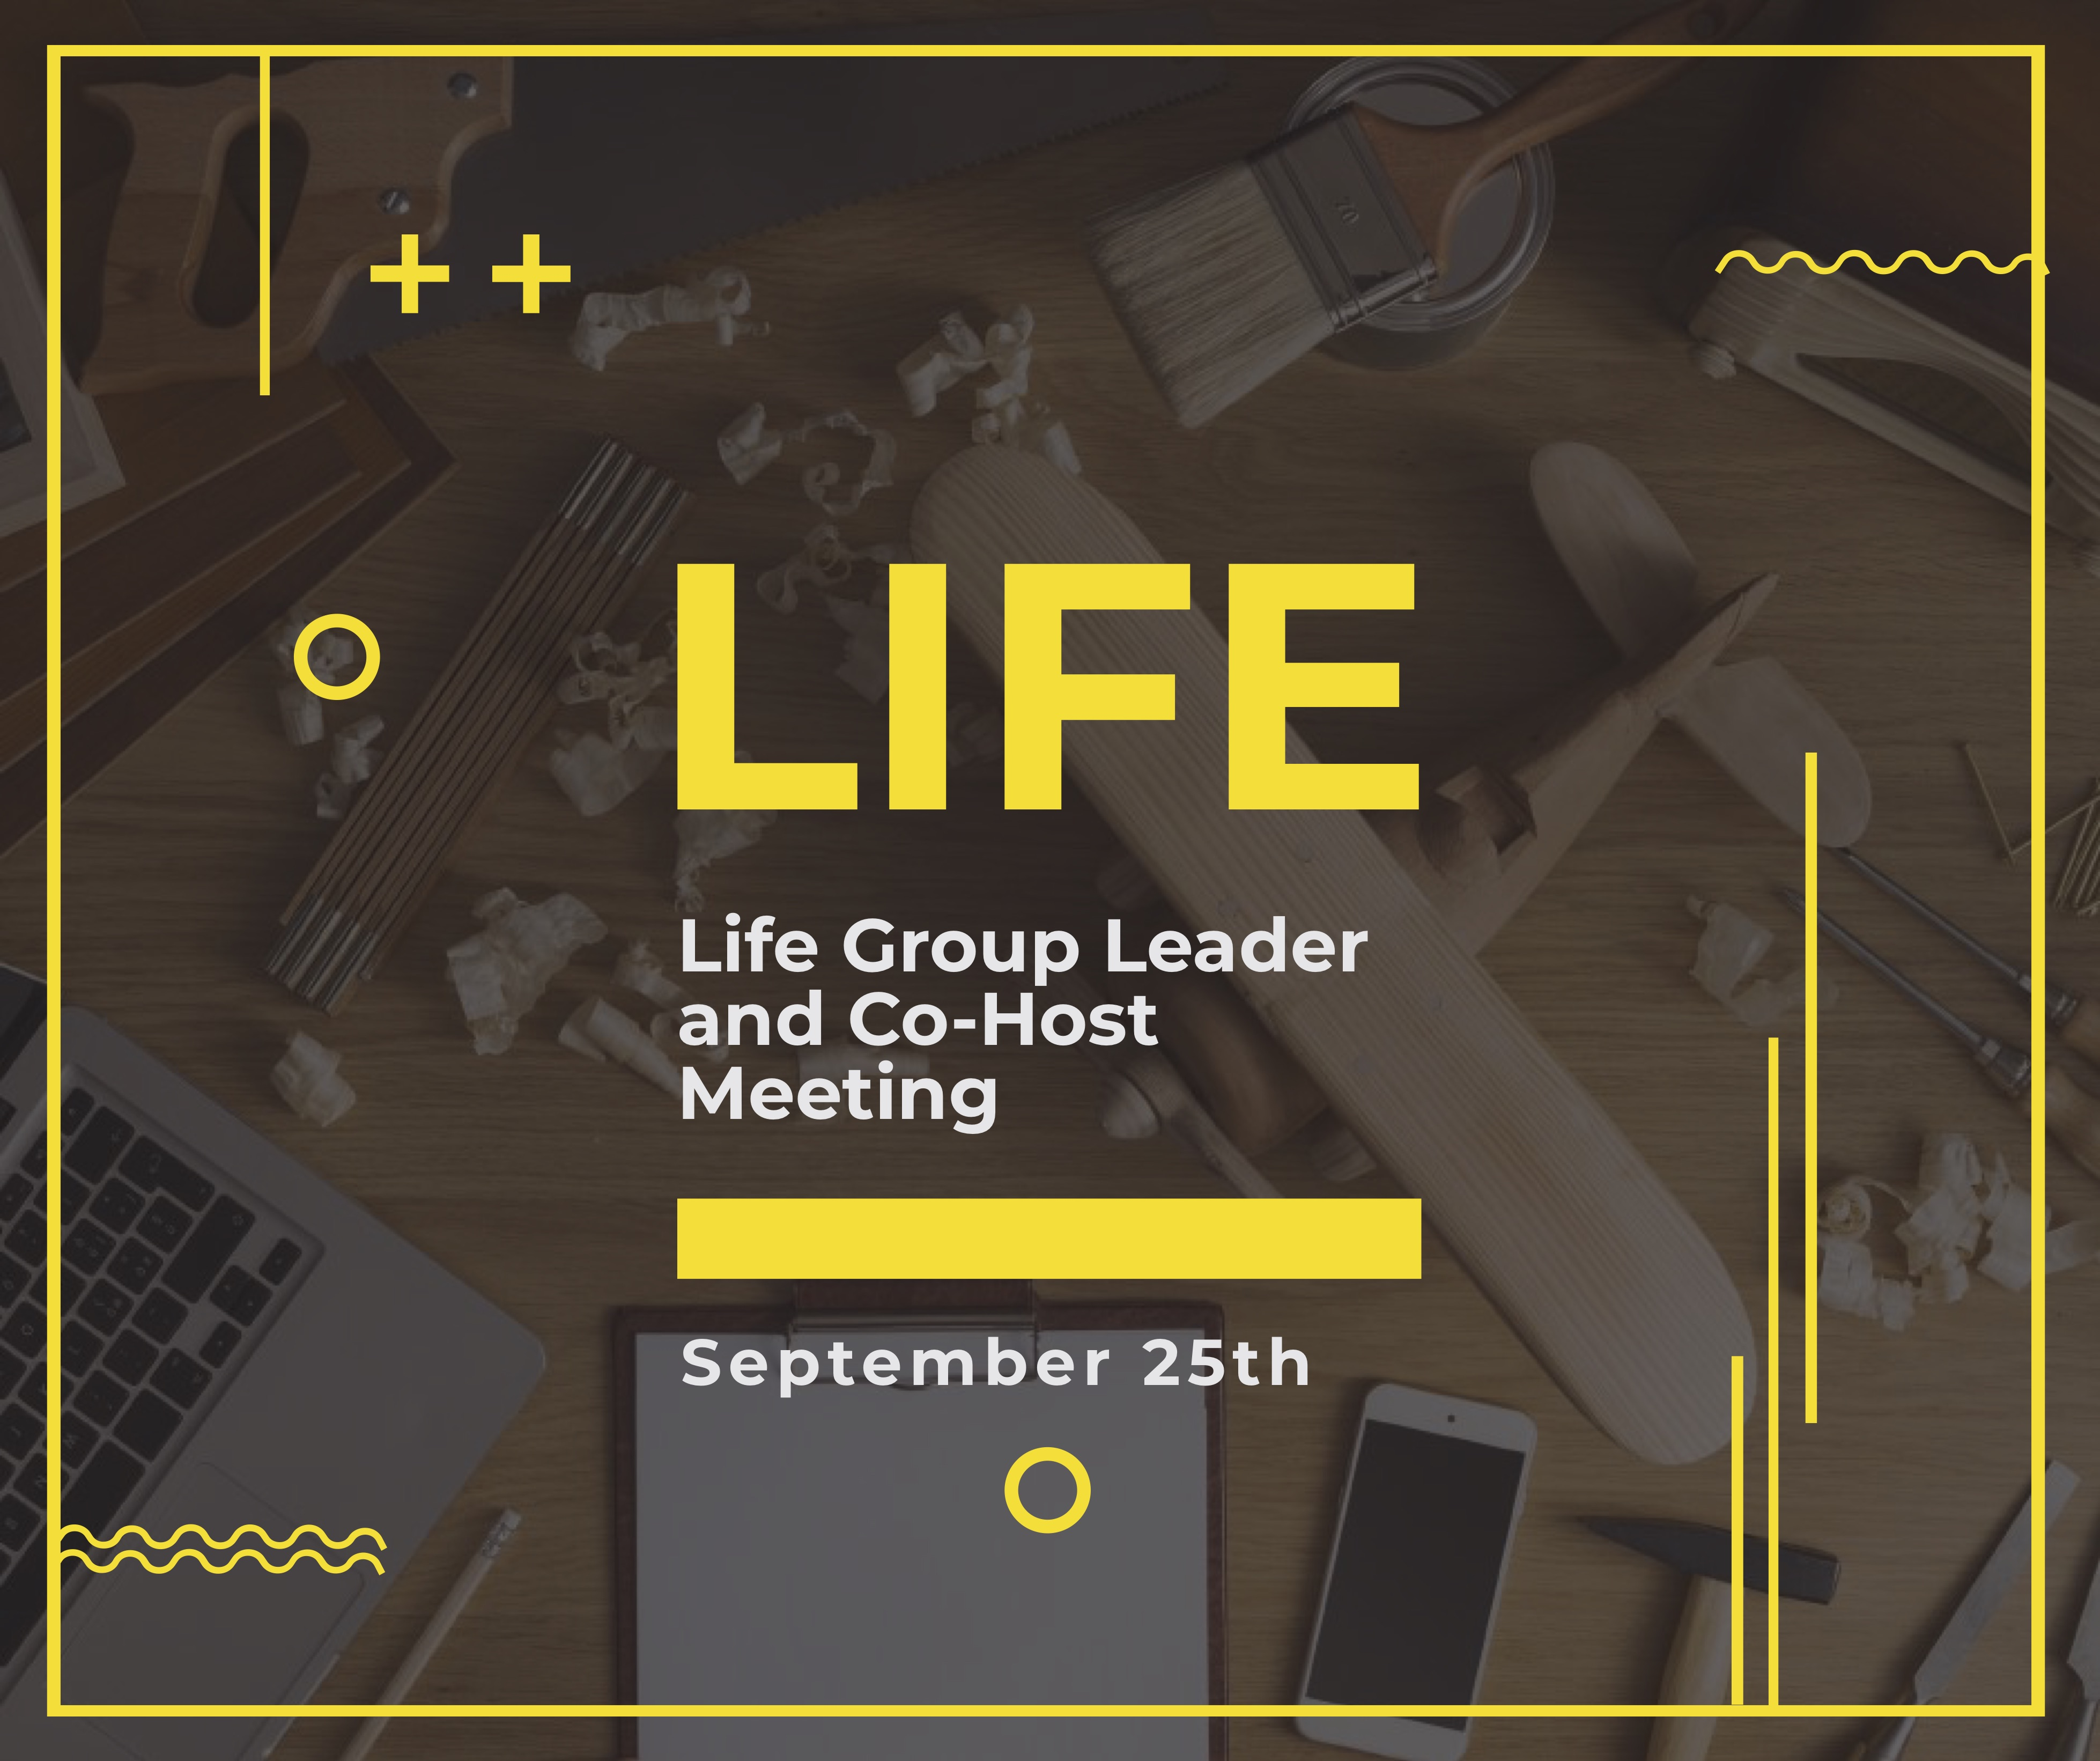 Life Group Leader Meeting 925 image